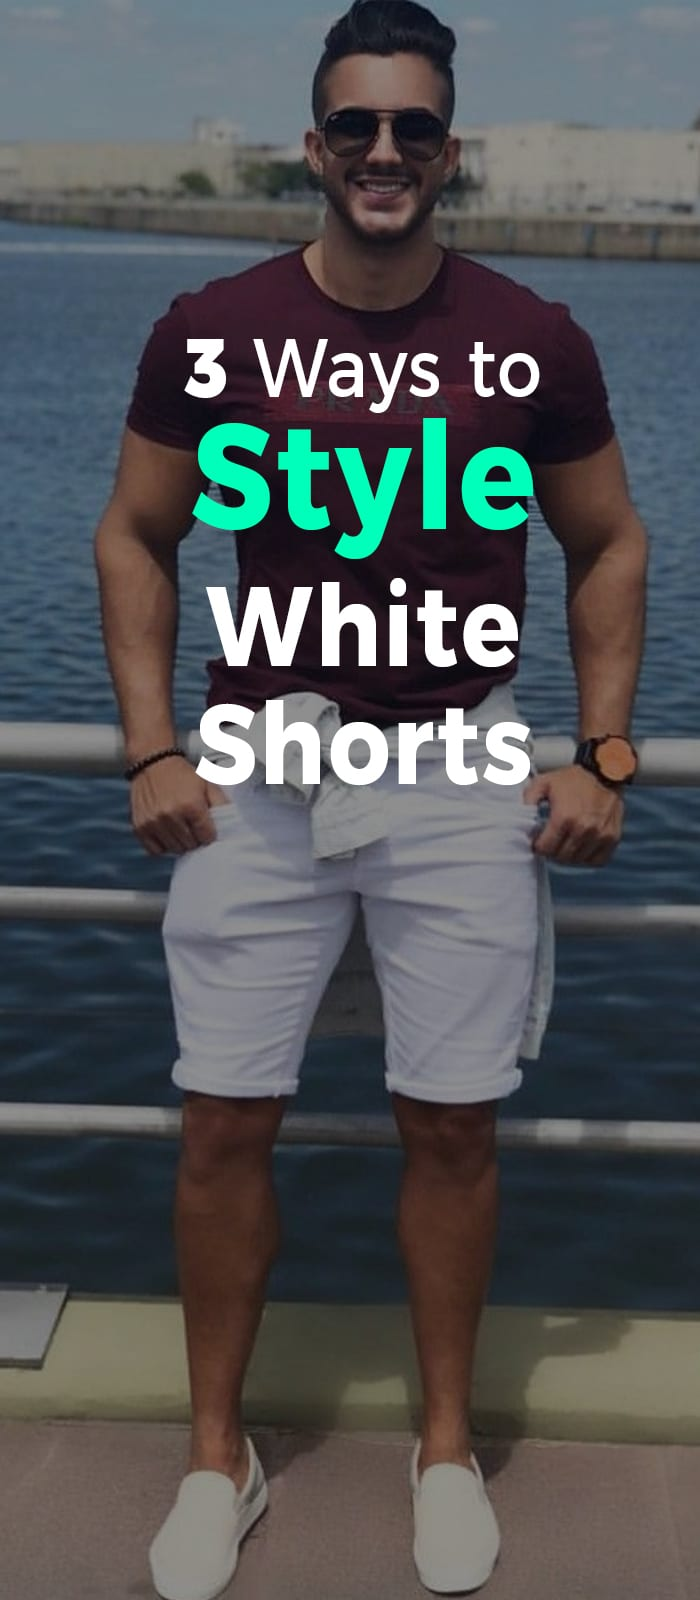 Maroon t-shirt white shorts and sunglasses for men